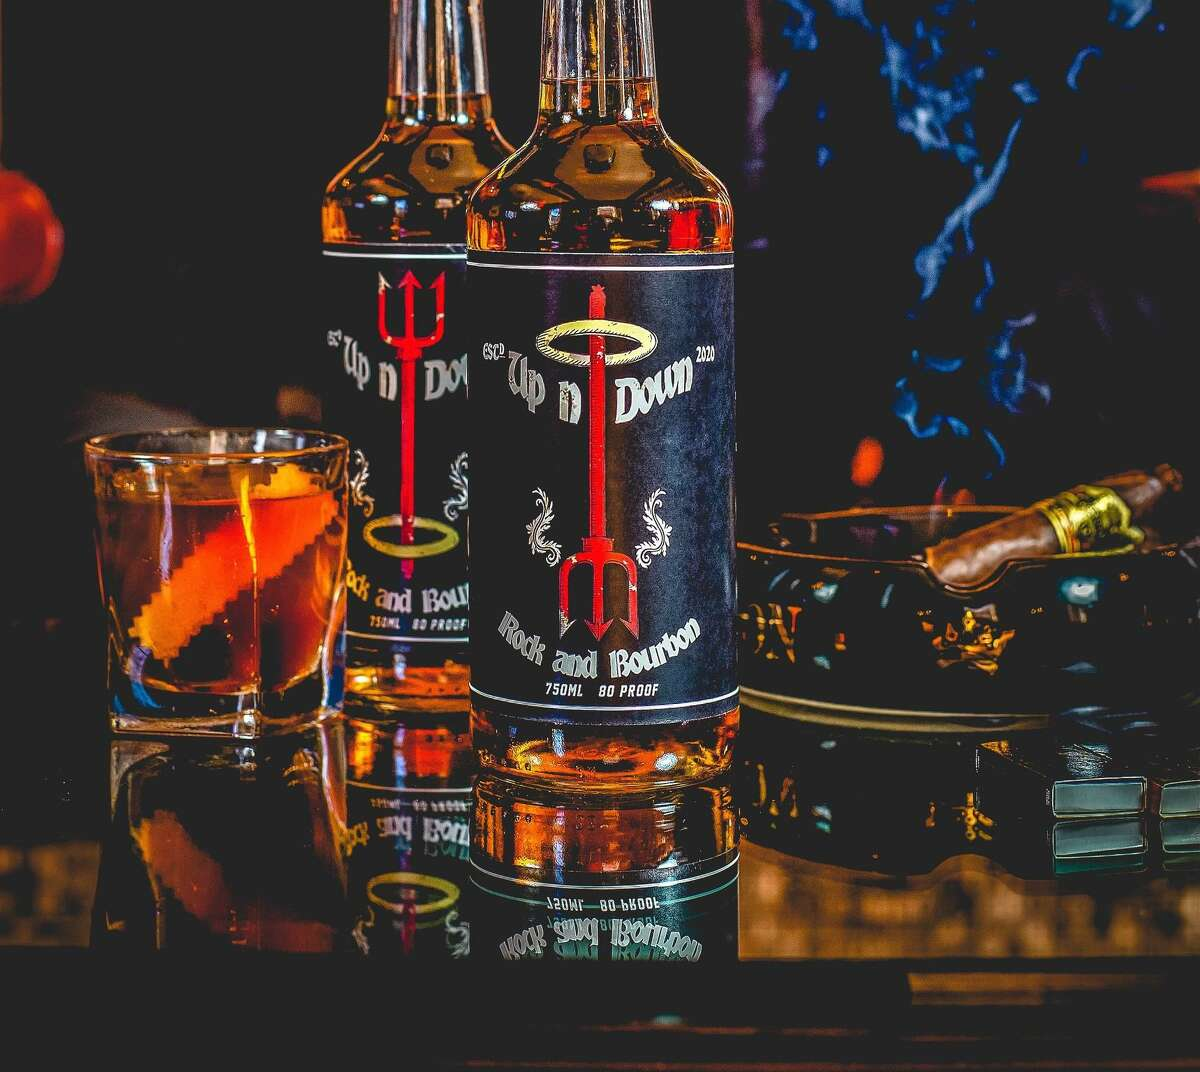 Up n' Down rock and bourbon, founded by longtime CT bar professional Justin Morales.